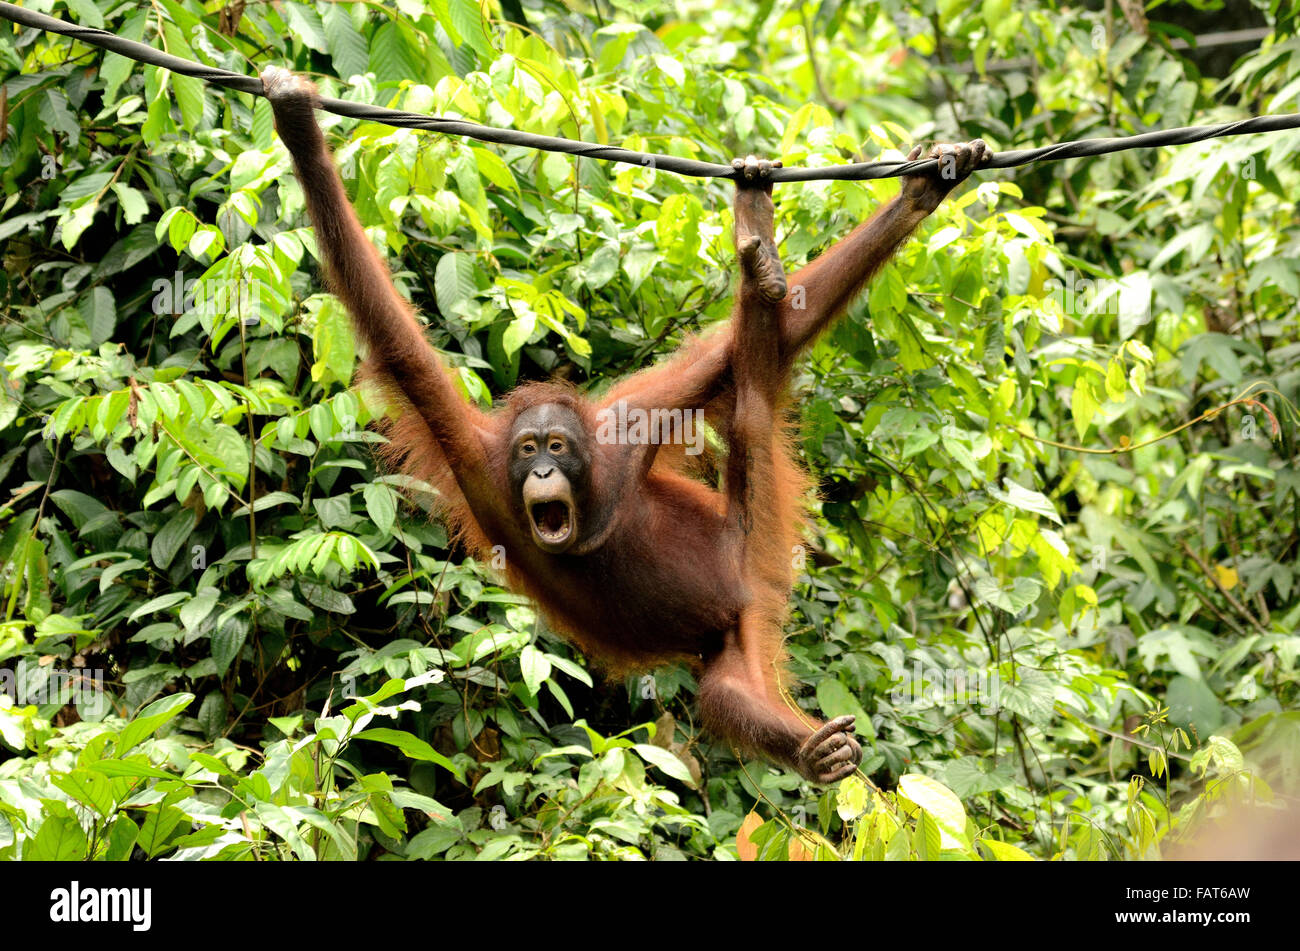 Orang-outan en centre de réhabilitation des Orang-outans de Sepilok Photo Stock